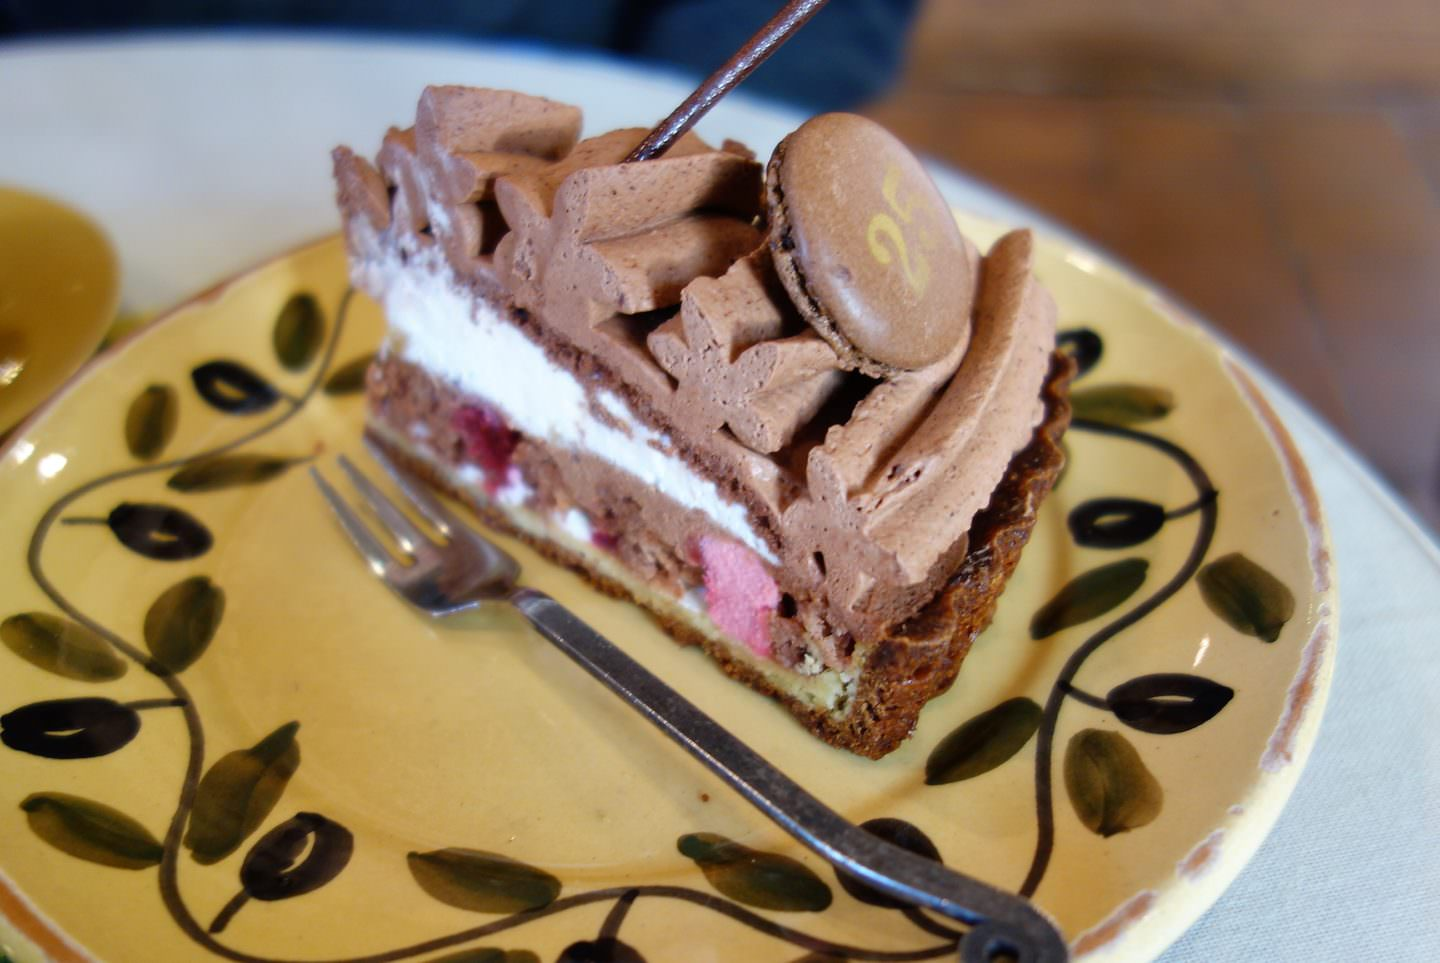 Have a relaxing time with a slice of tart and a big bowl of coffee or tea.